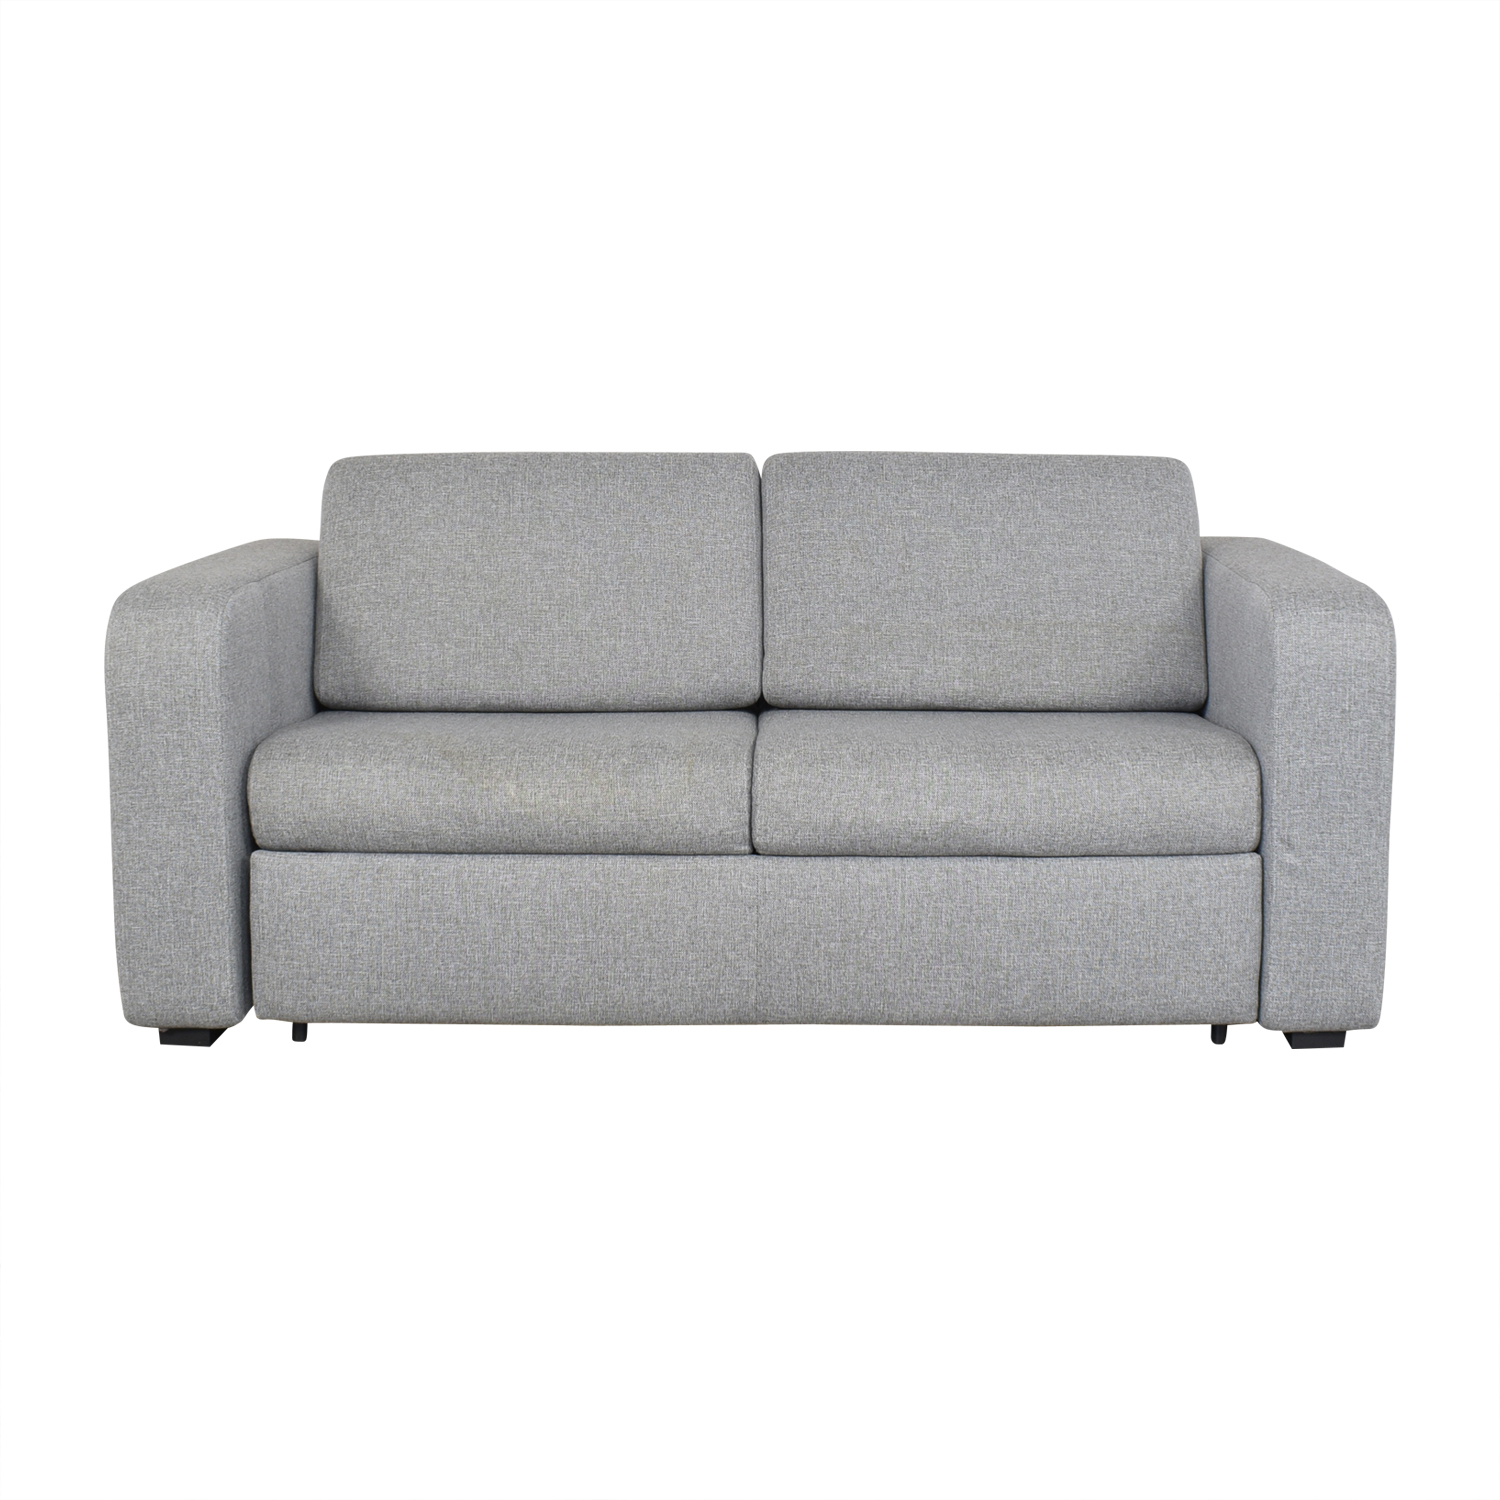 Habitat Habitat Sleeper Sofa grey